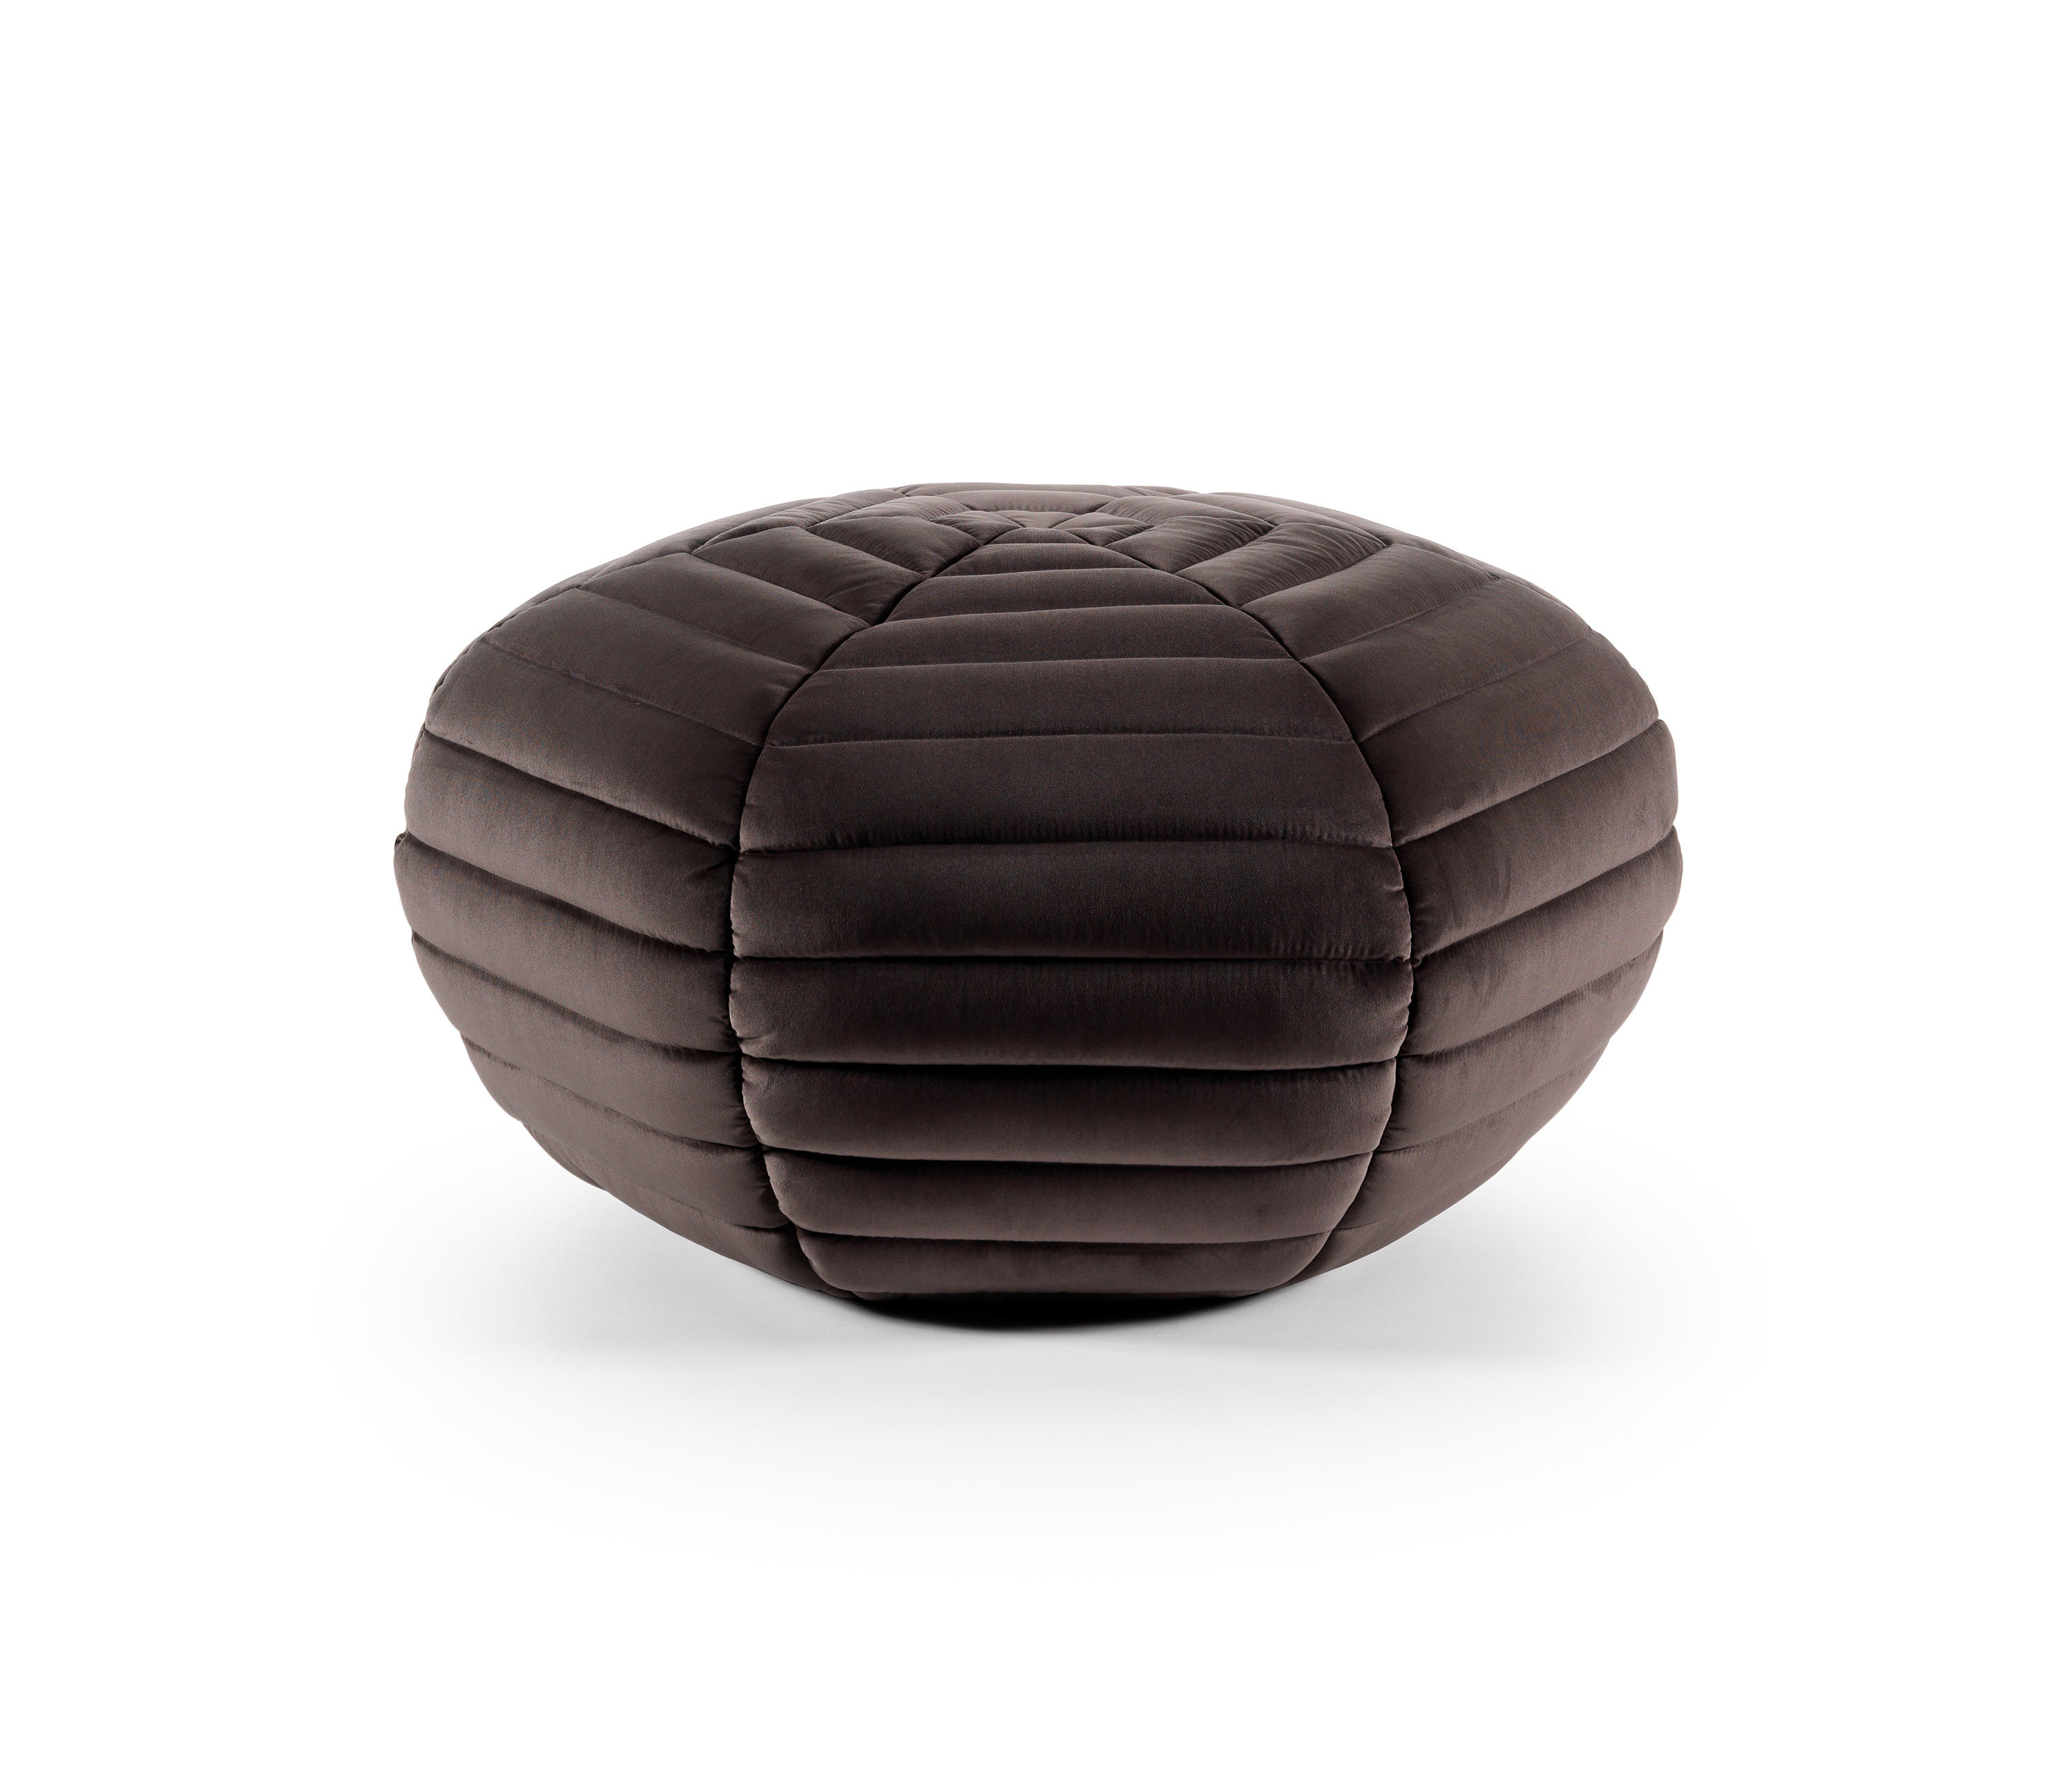 pouf big g pouf as coffee table perfect for your house table pouf e under large plus moroccan. Black Bedroom Furniture Sets. Home Design Ideas